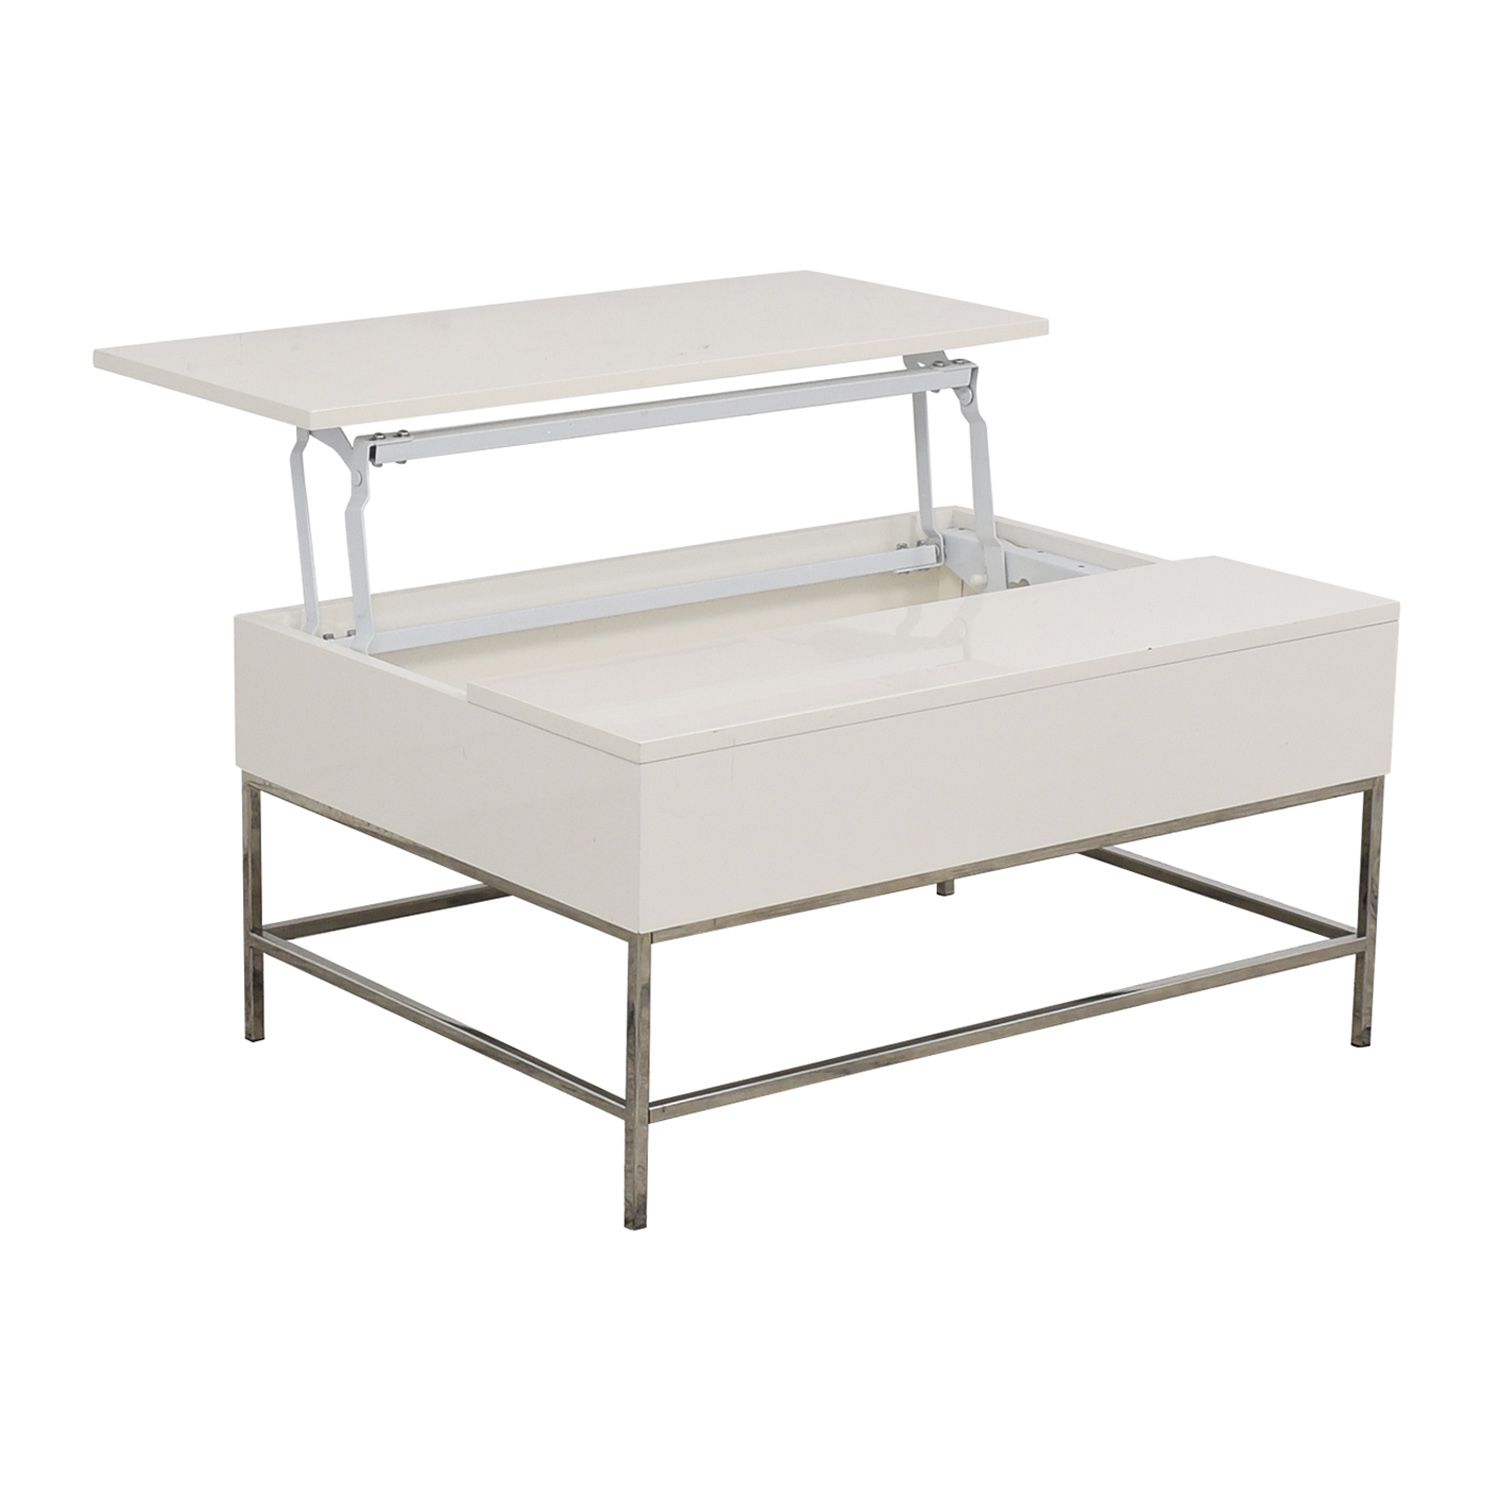 West Elm West Elm Lacquer Storage Coffee Table ct